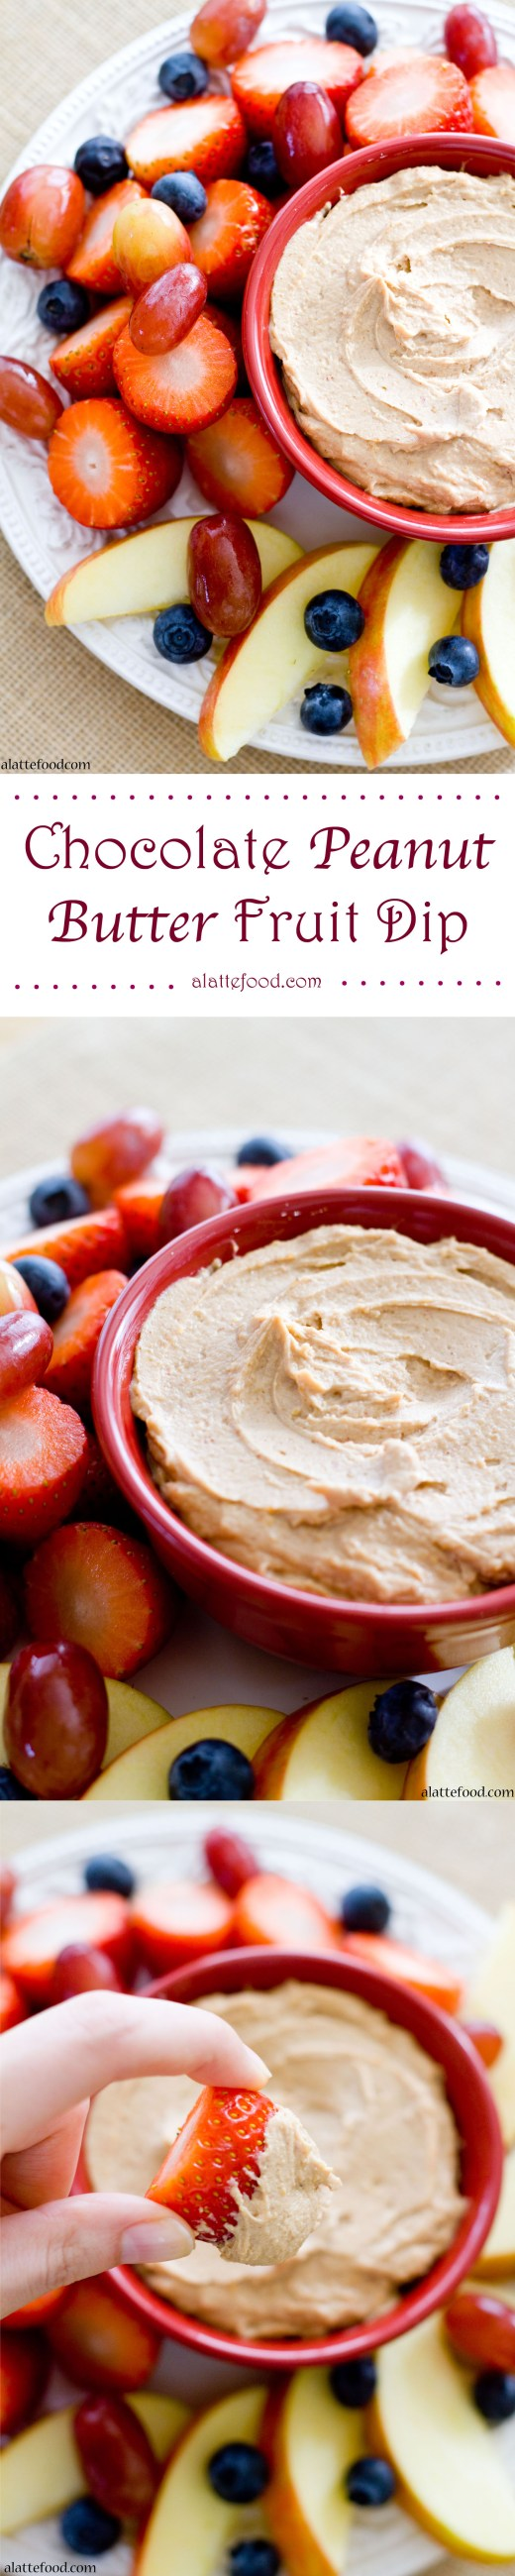 {Healthy and Gluten-Free} Chocolate Peanut Butter Fruit Dip   A Latte Food